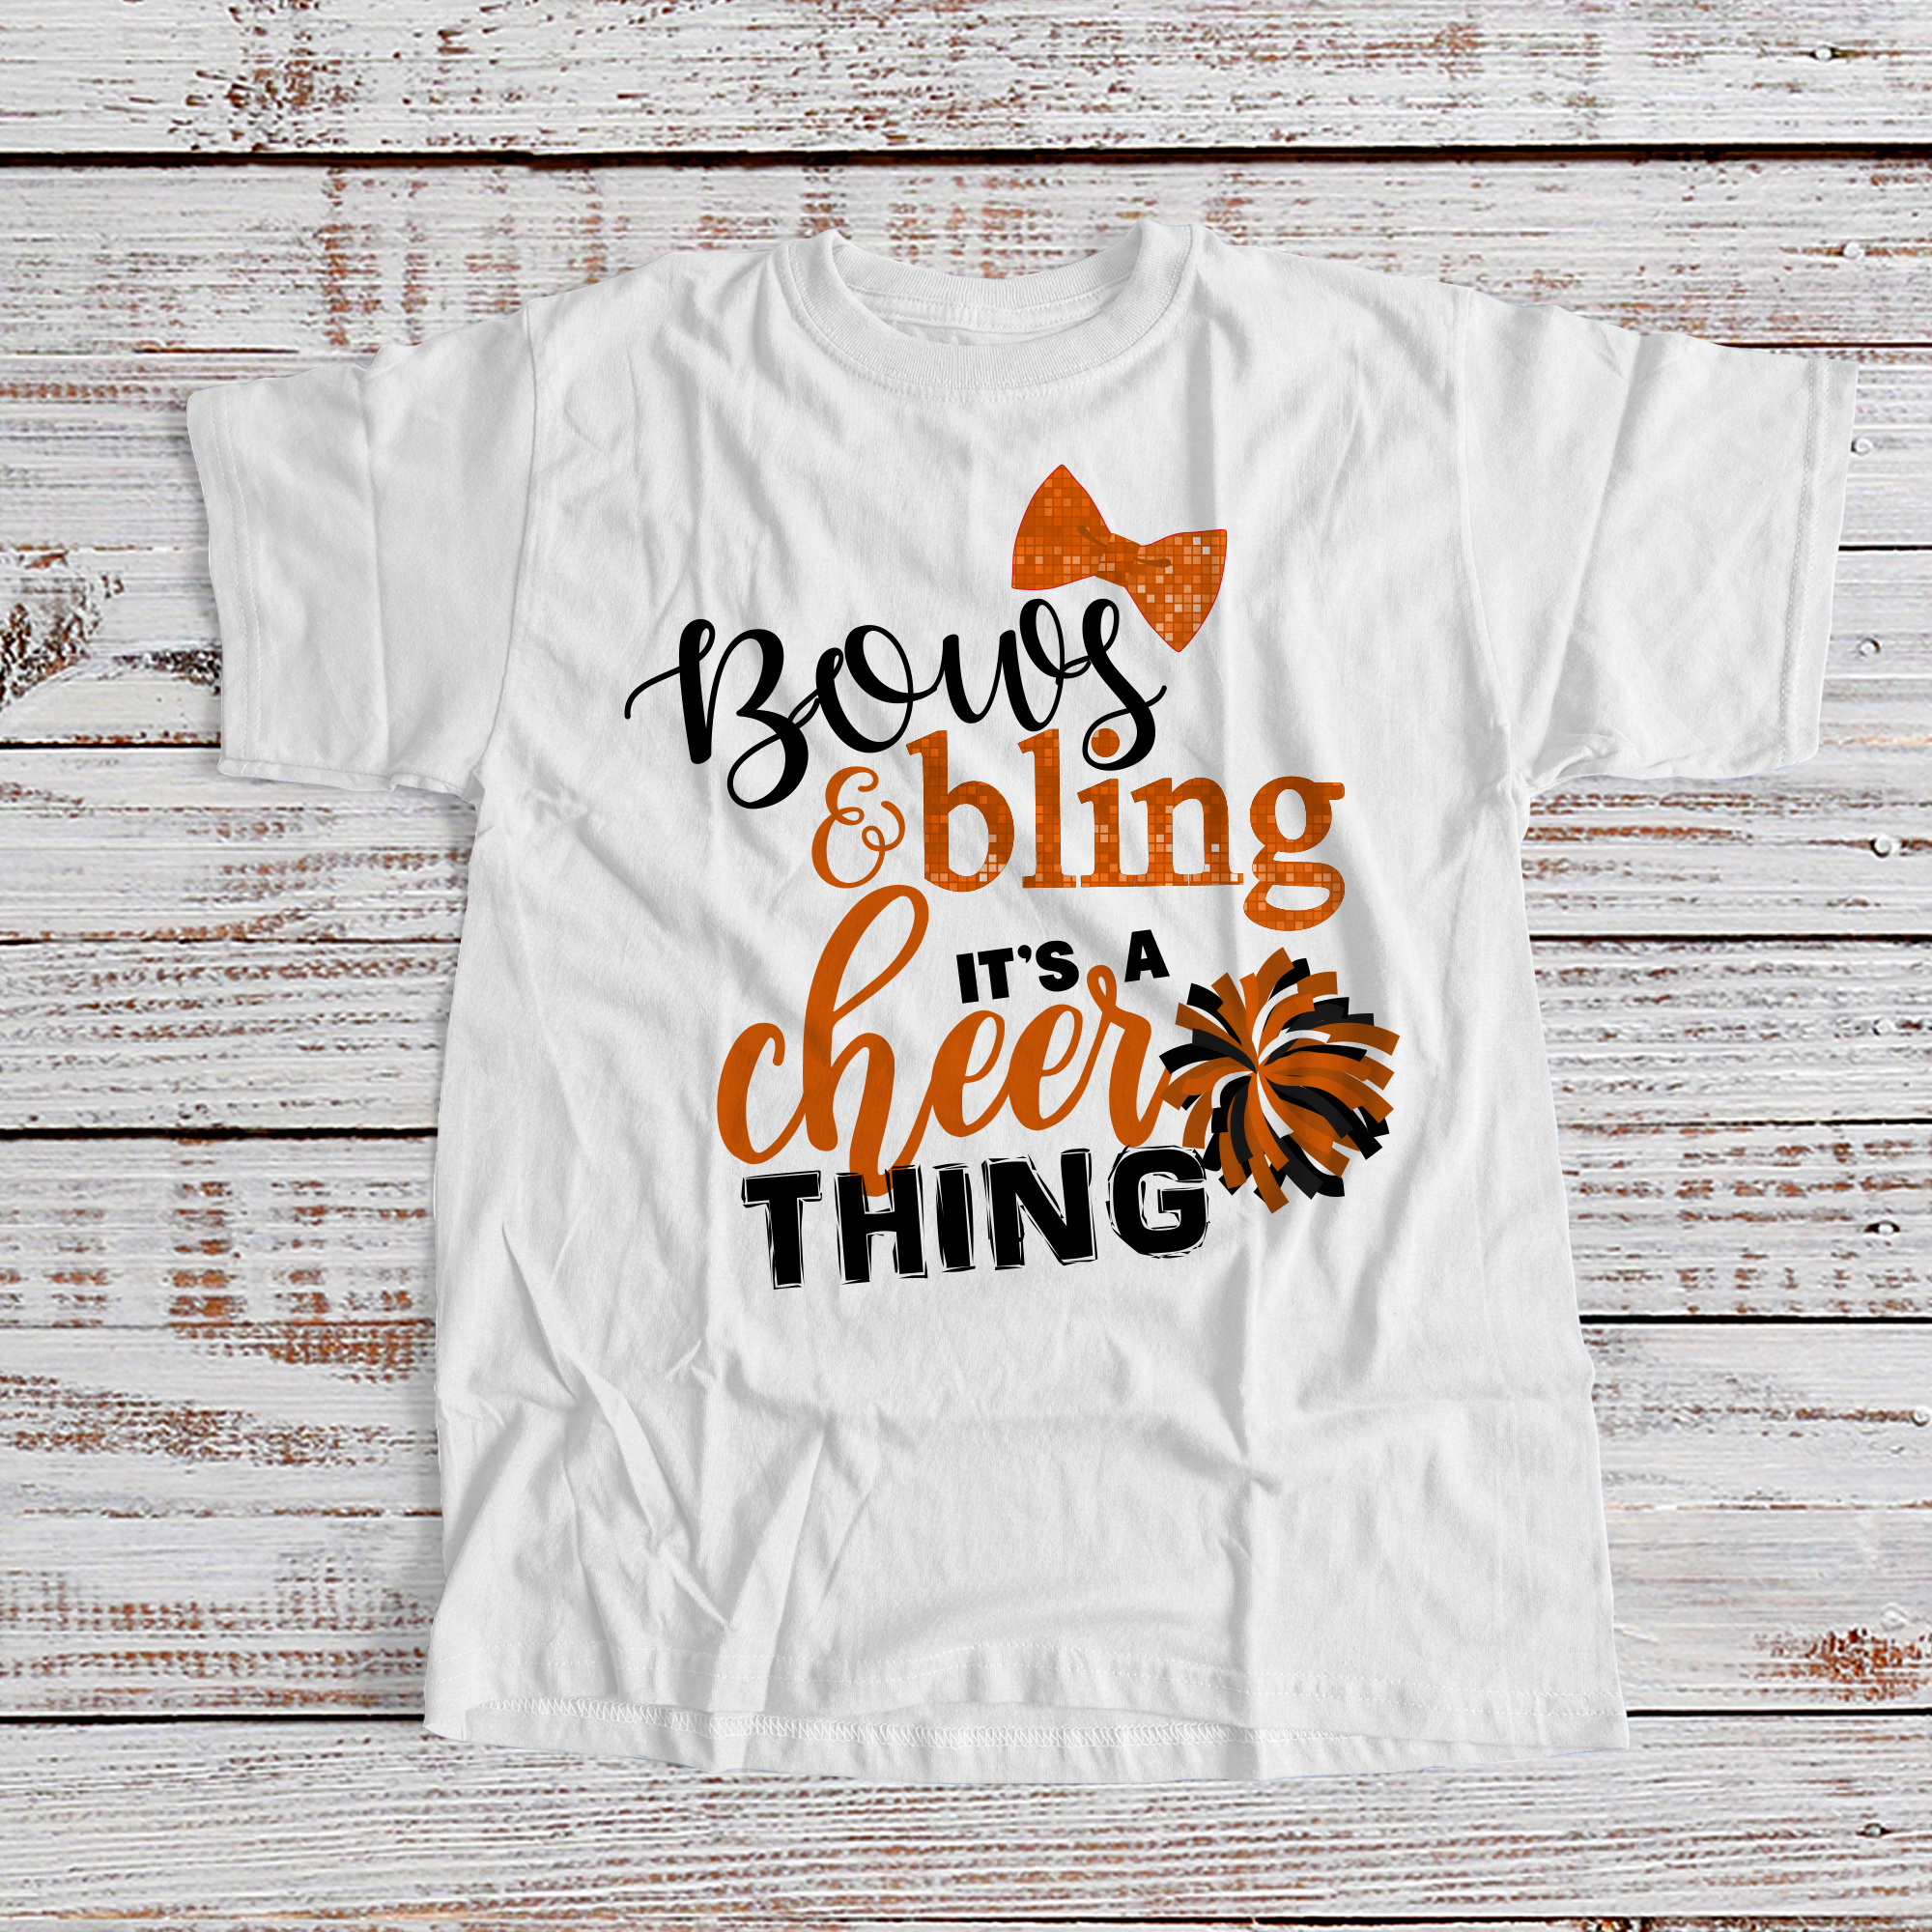 Fun Cheer Designs